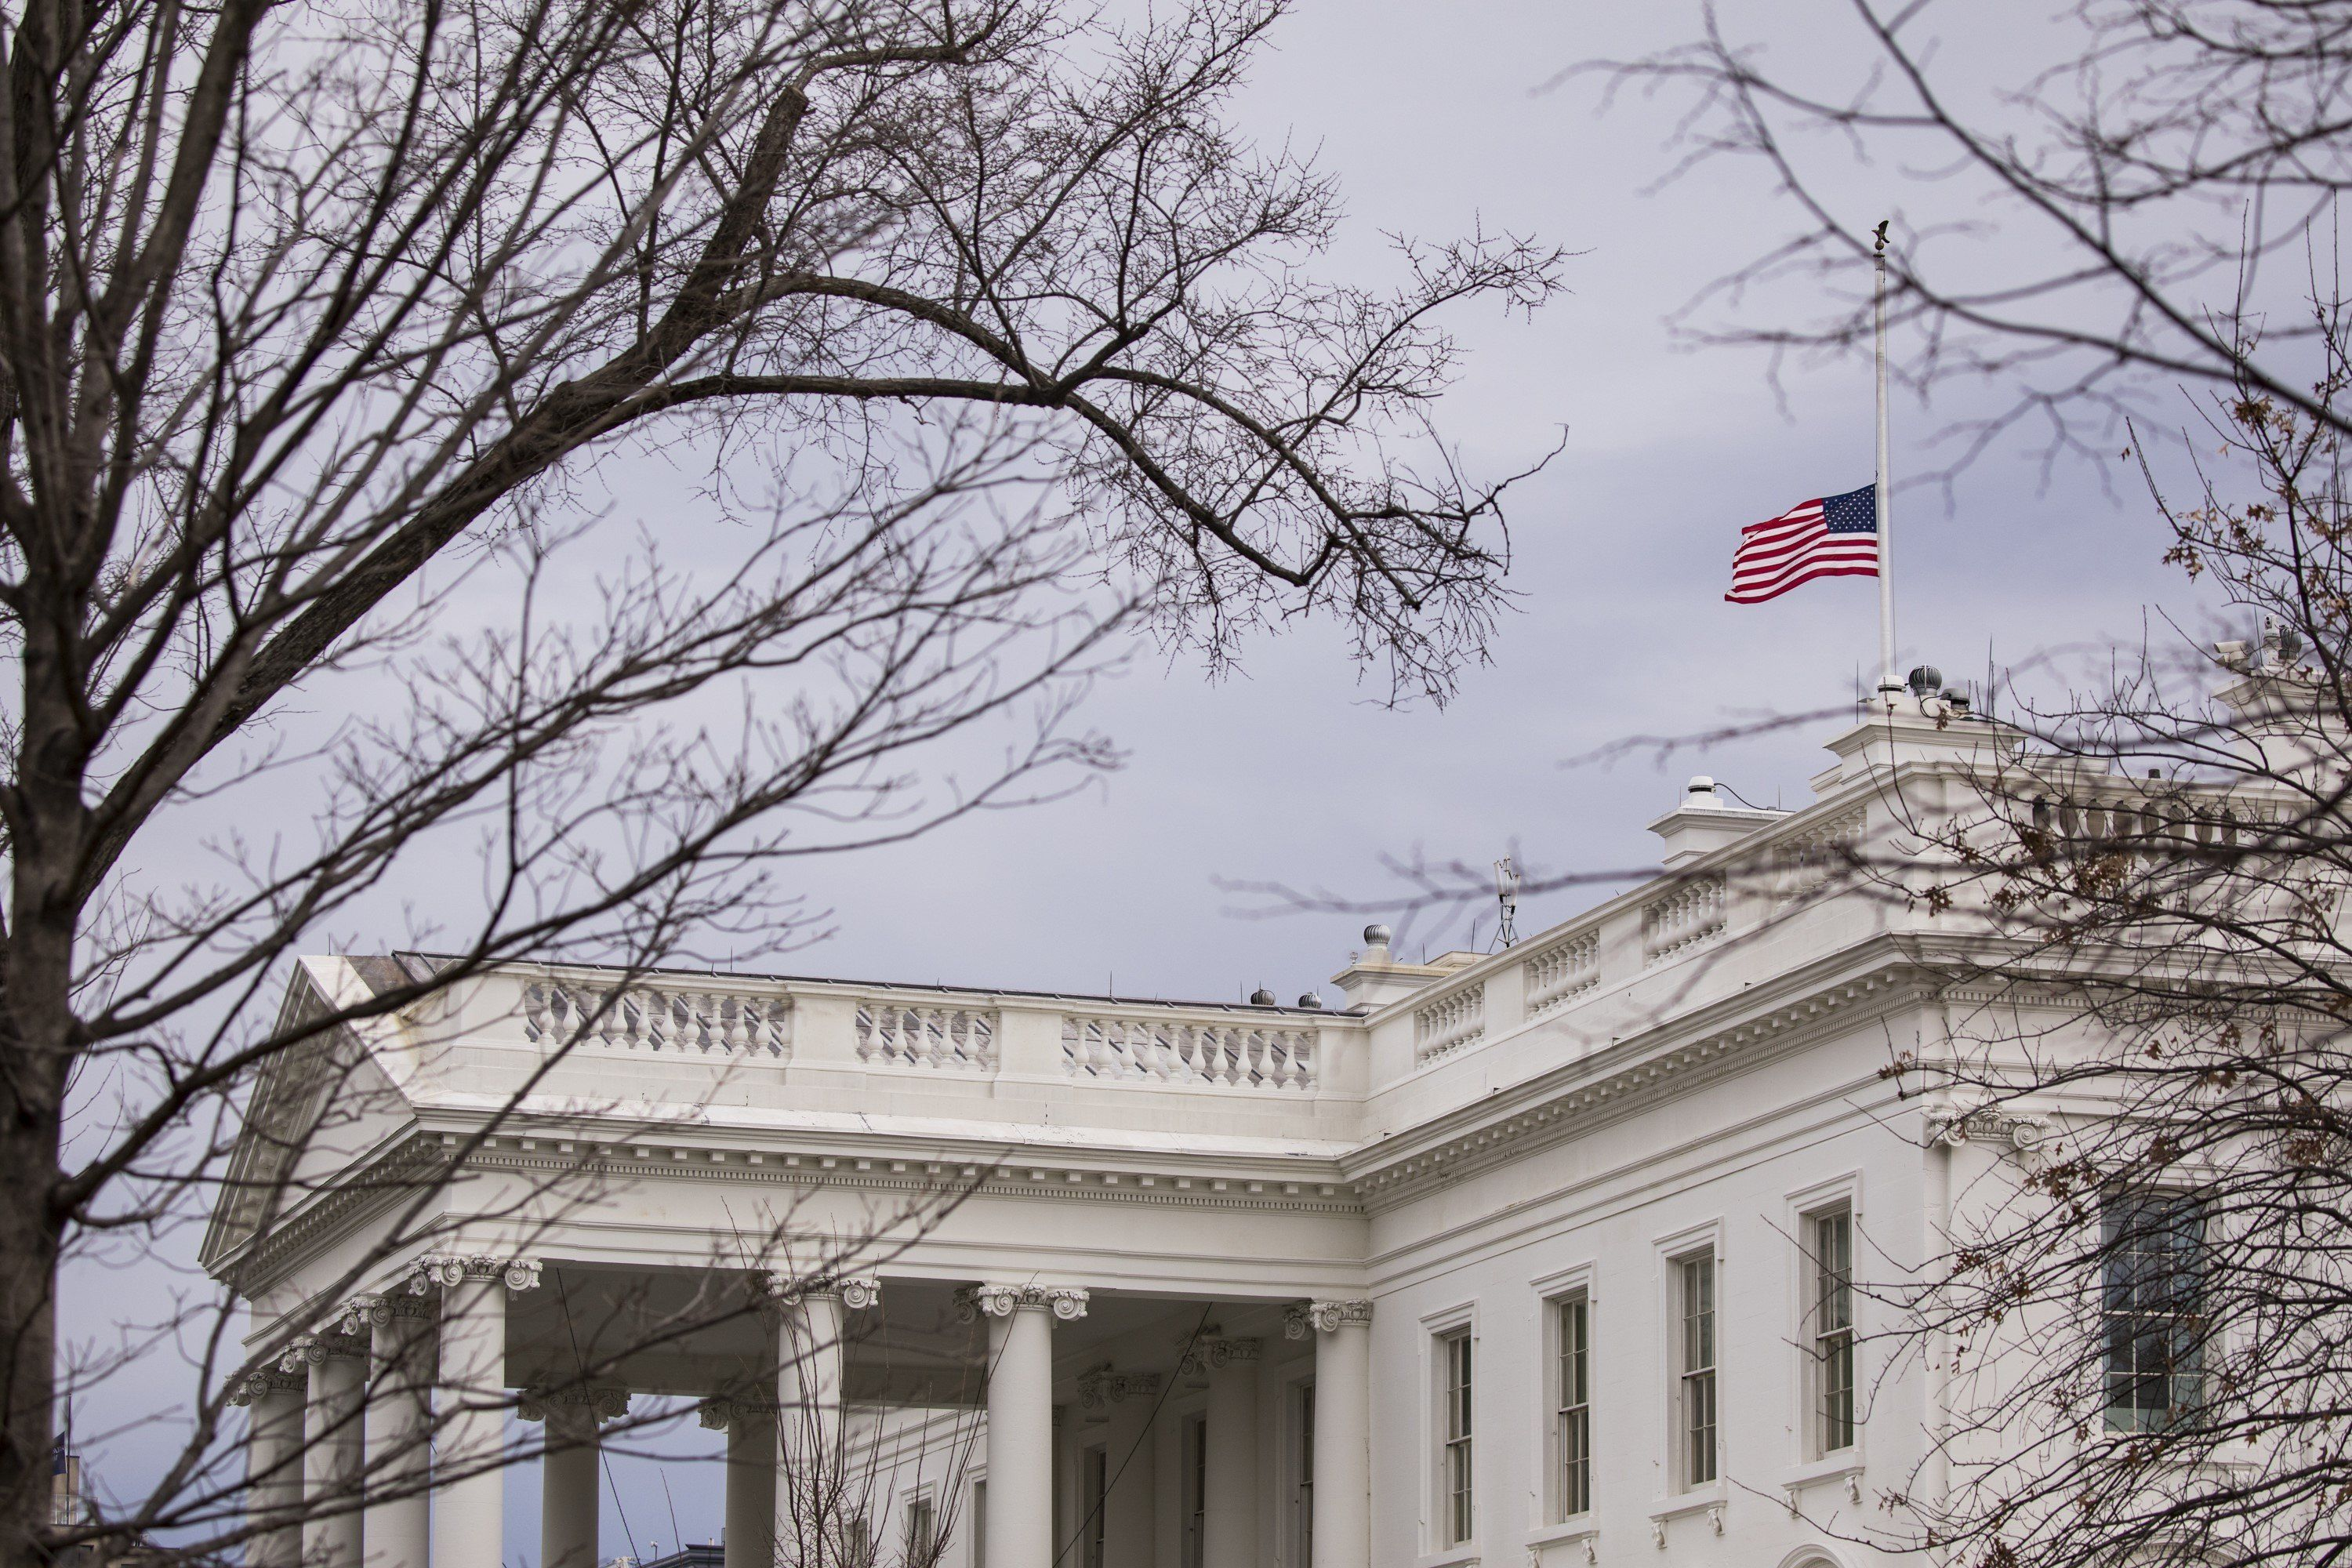 WASHINGTON, USA - FEBRUARY 15: The American flag flies at half staff over the White House in remembrance of those killed in the mass shooting at Marjory Stoneman Douglas High School in Parkland, Fla. in Washington, USA on February 15, 2018. Former student Nikolas Cruz has been apprehended and charged with 17 counts of premeditated murder after attacking his former school with an AR-15 style rifle. (Photo by Samuel Corum/Anadolu Agency/Getty Images)